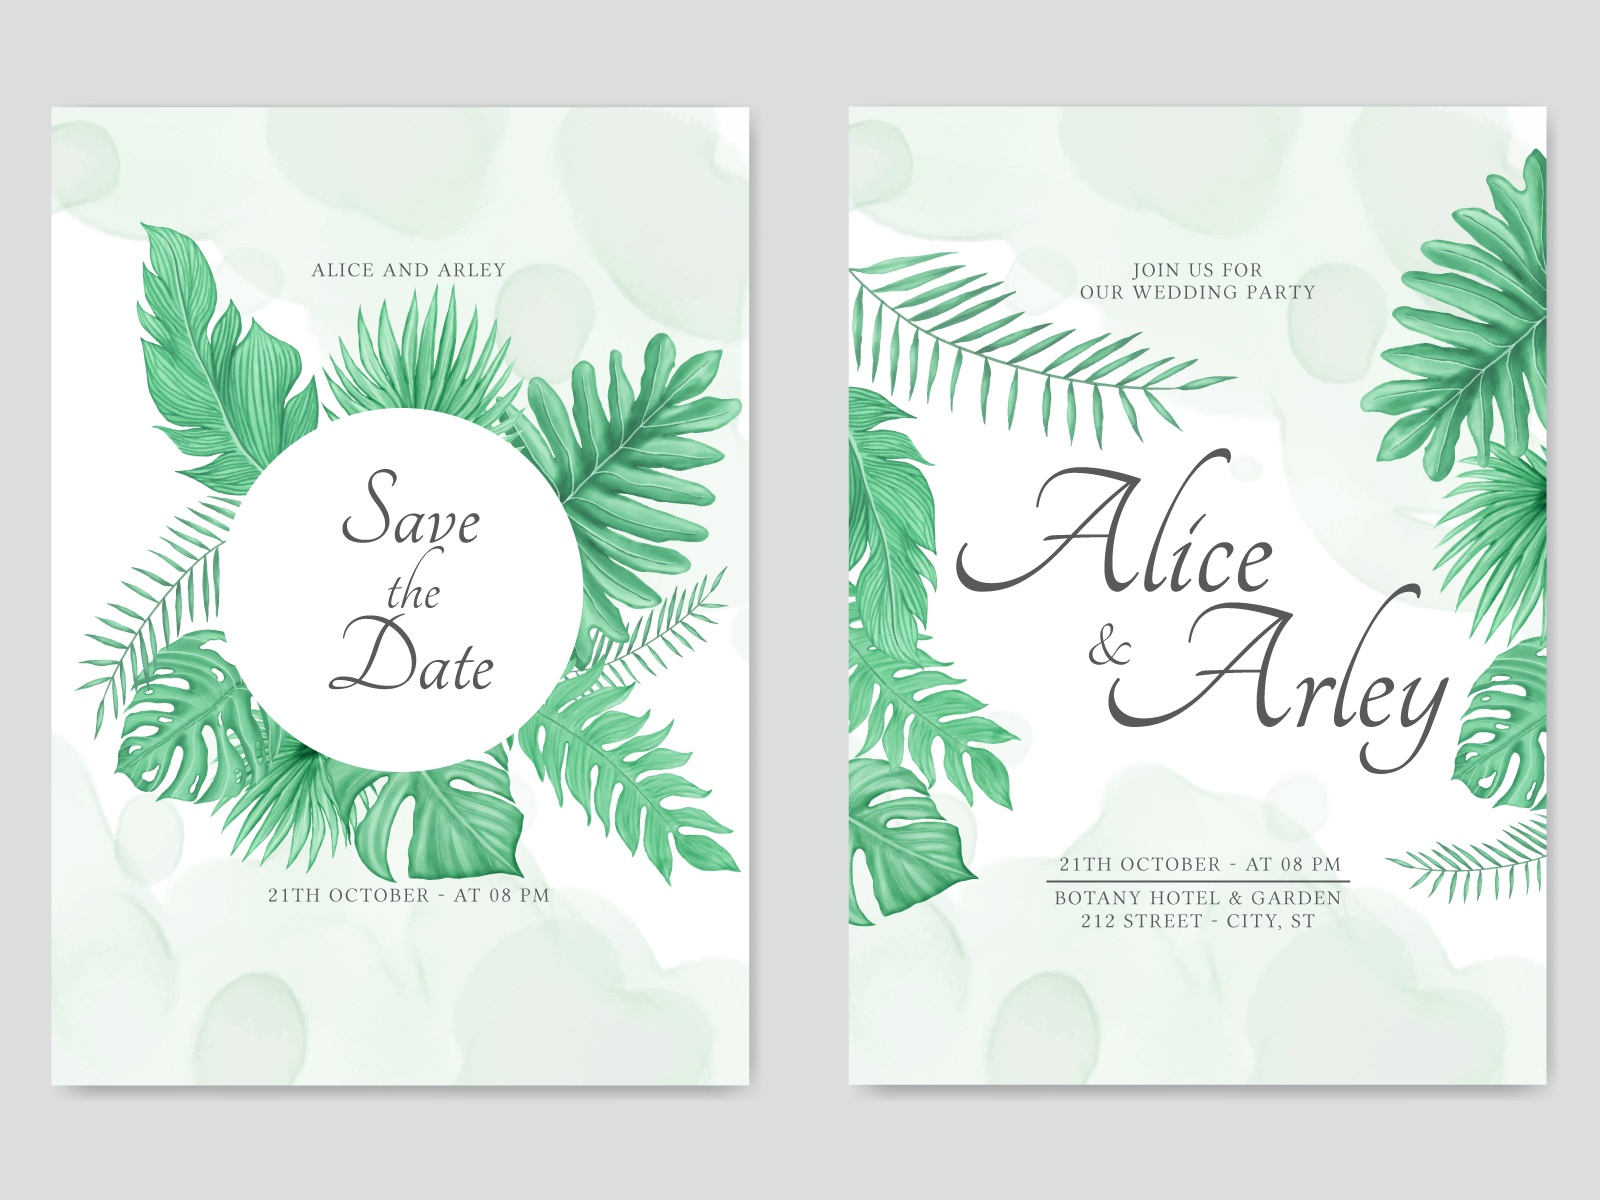 Summer Wedding Invitation Template With Tropical Leaves Theme By Dheo Donny Adittya On Dribbble To get more templates about posters,flyers,brochures,card,mockup,logo,video,sound,ppt,word,please visit pikbest.com. summer wedding invitation template with